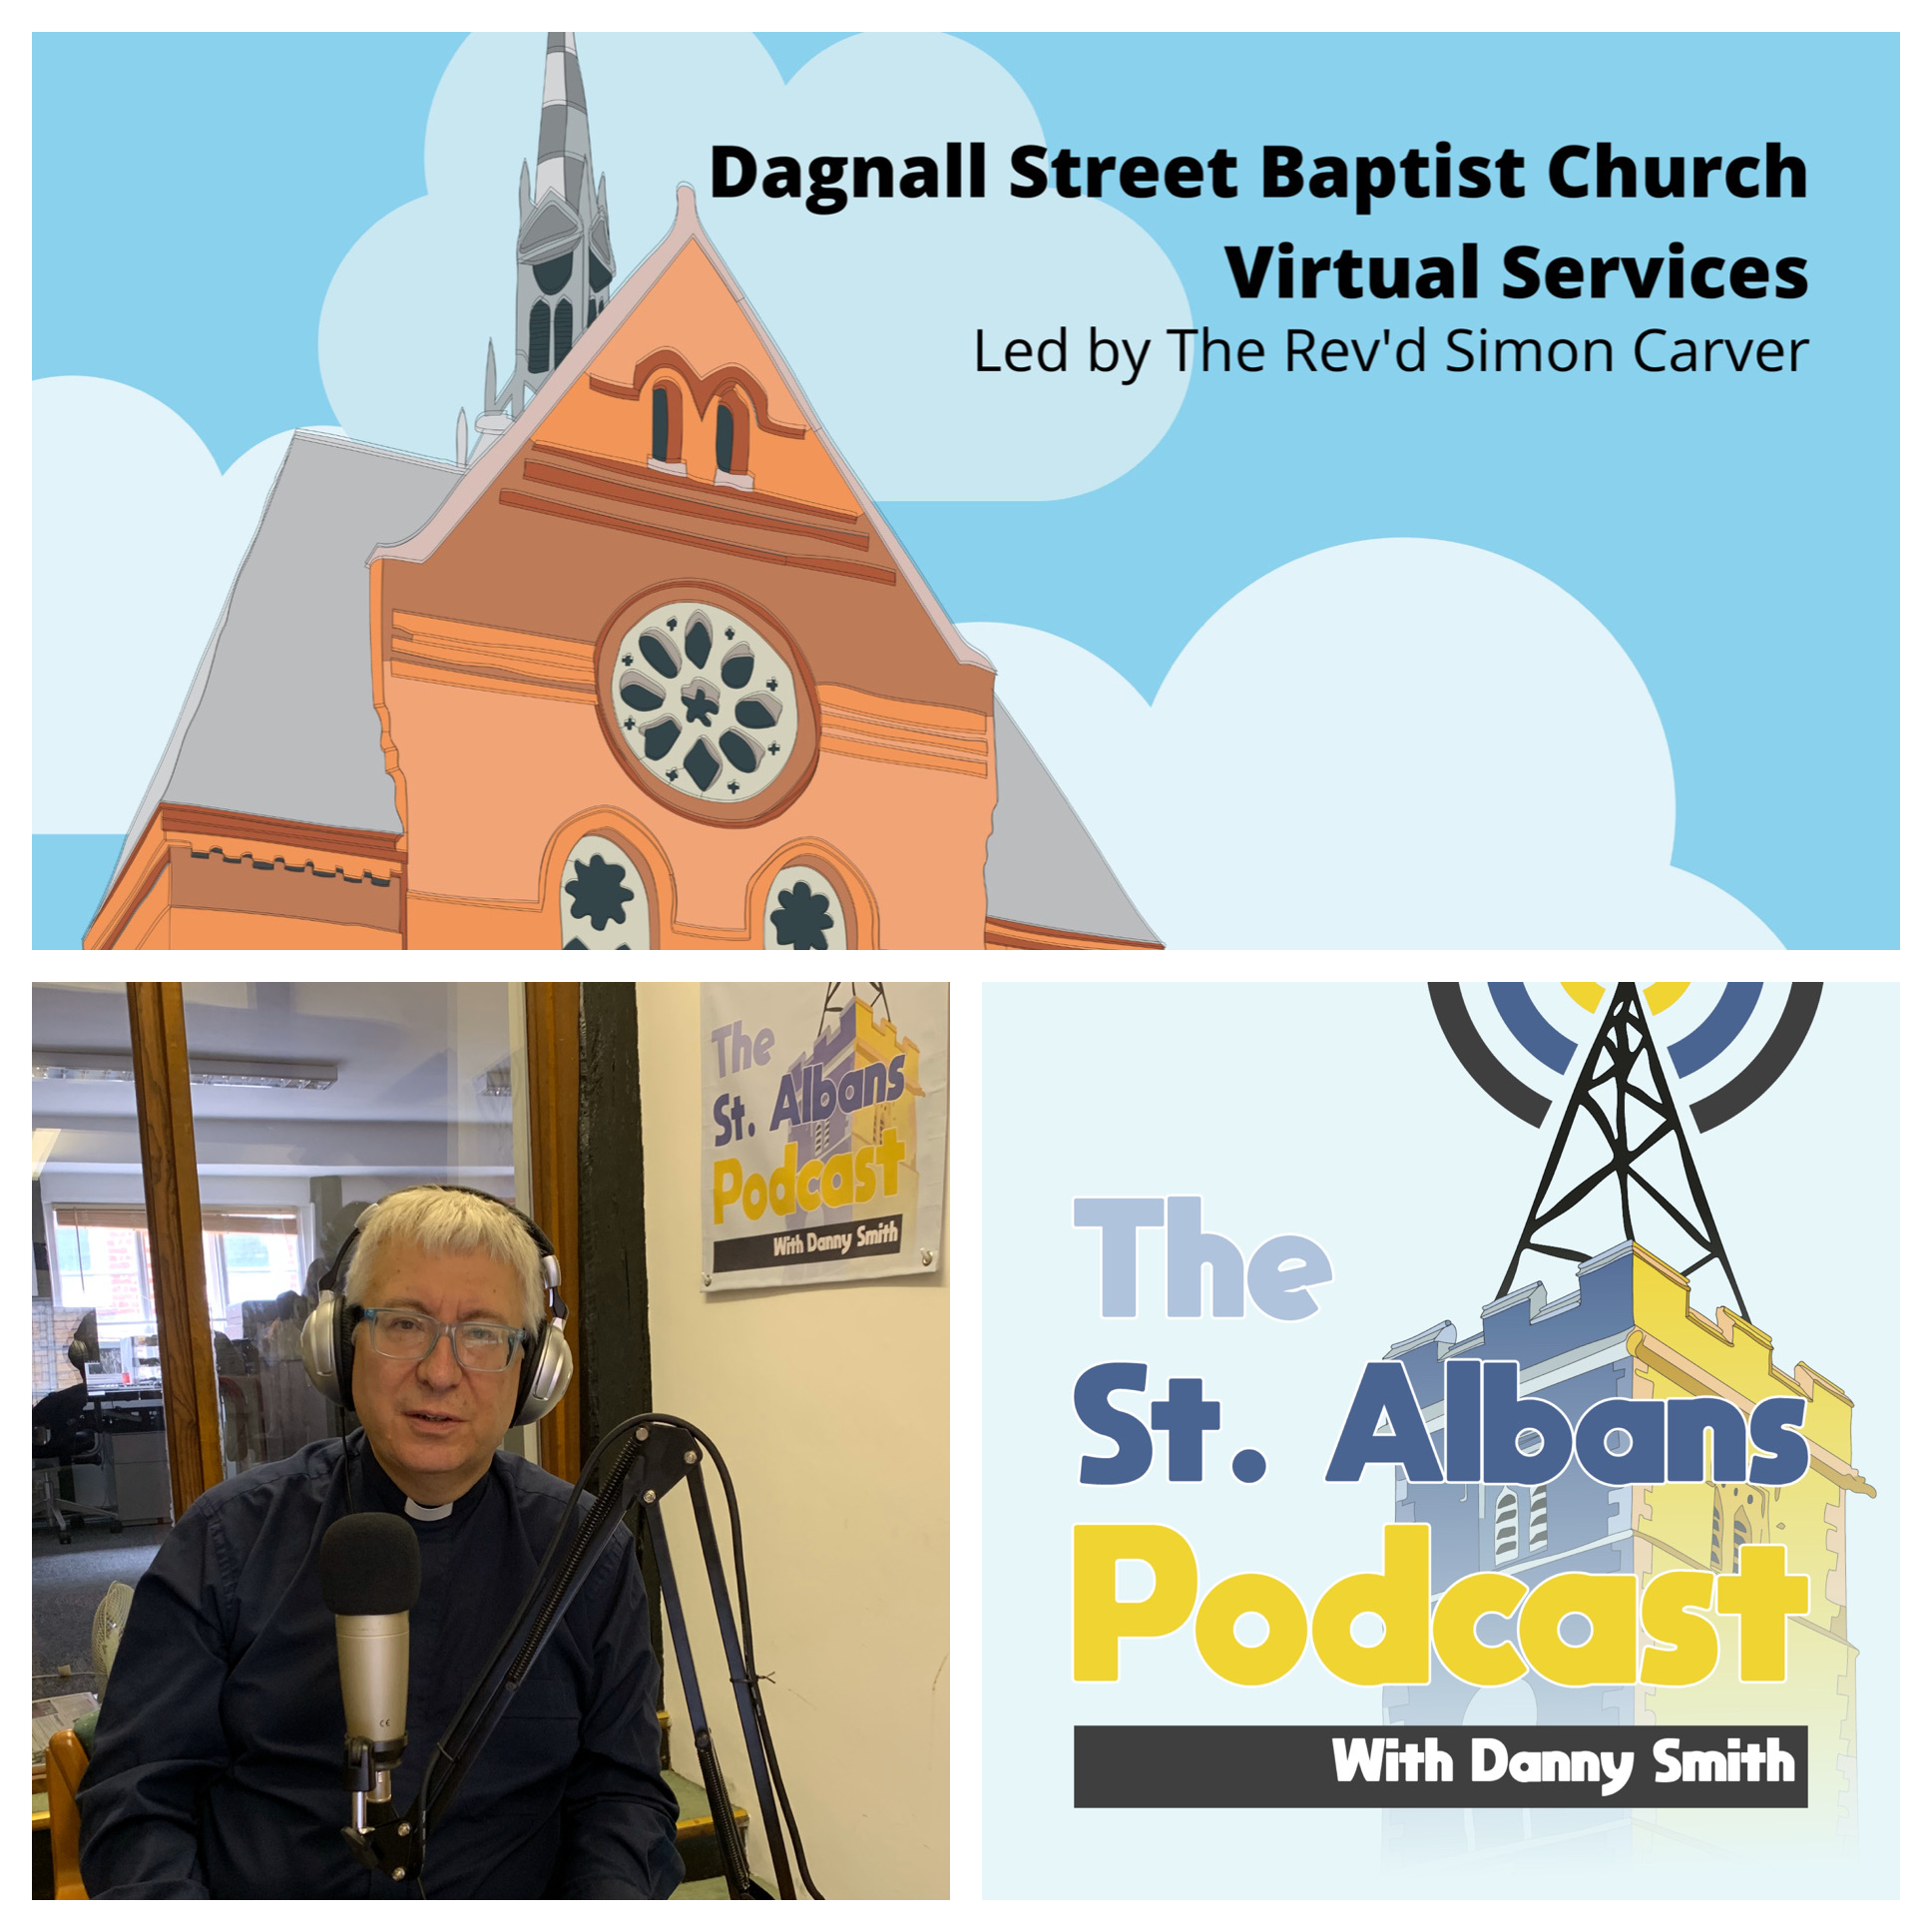 Dagnall Street Baptist Church's Virtual Services